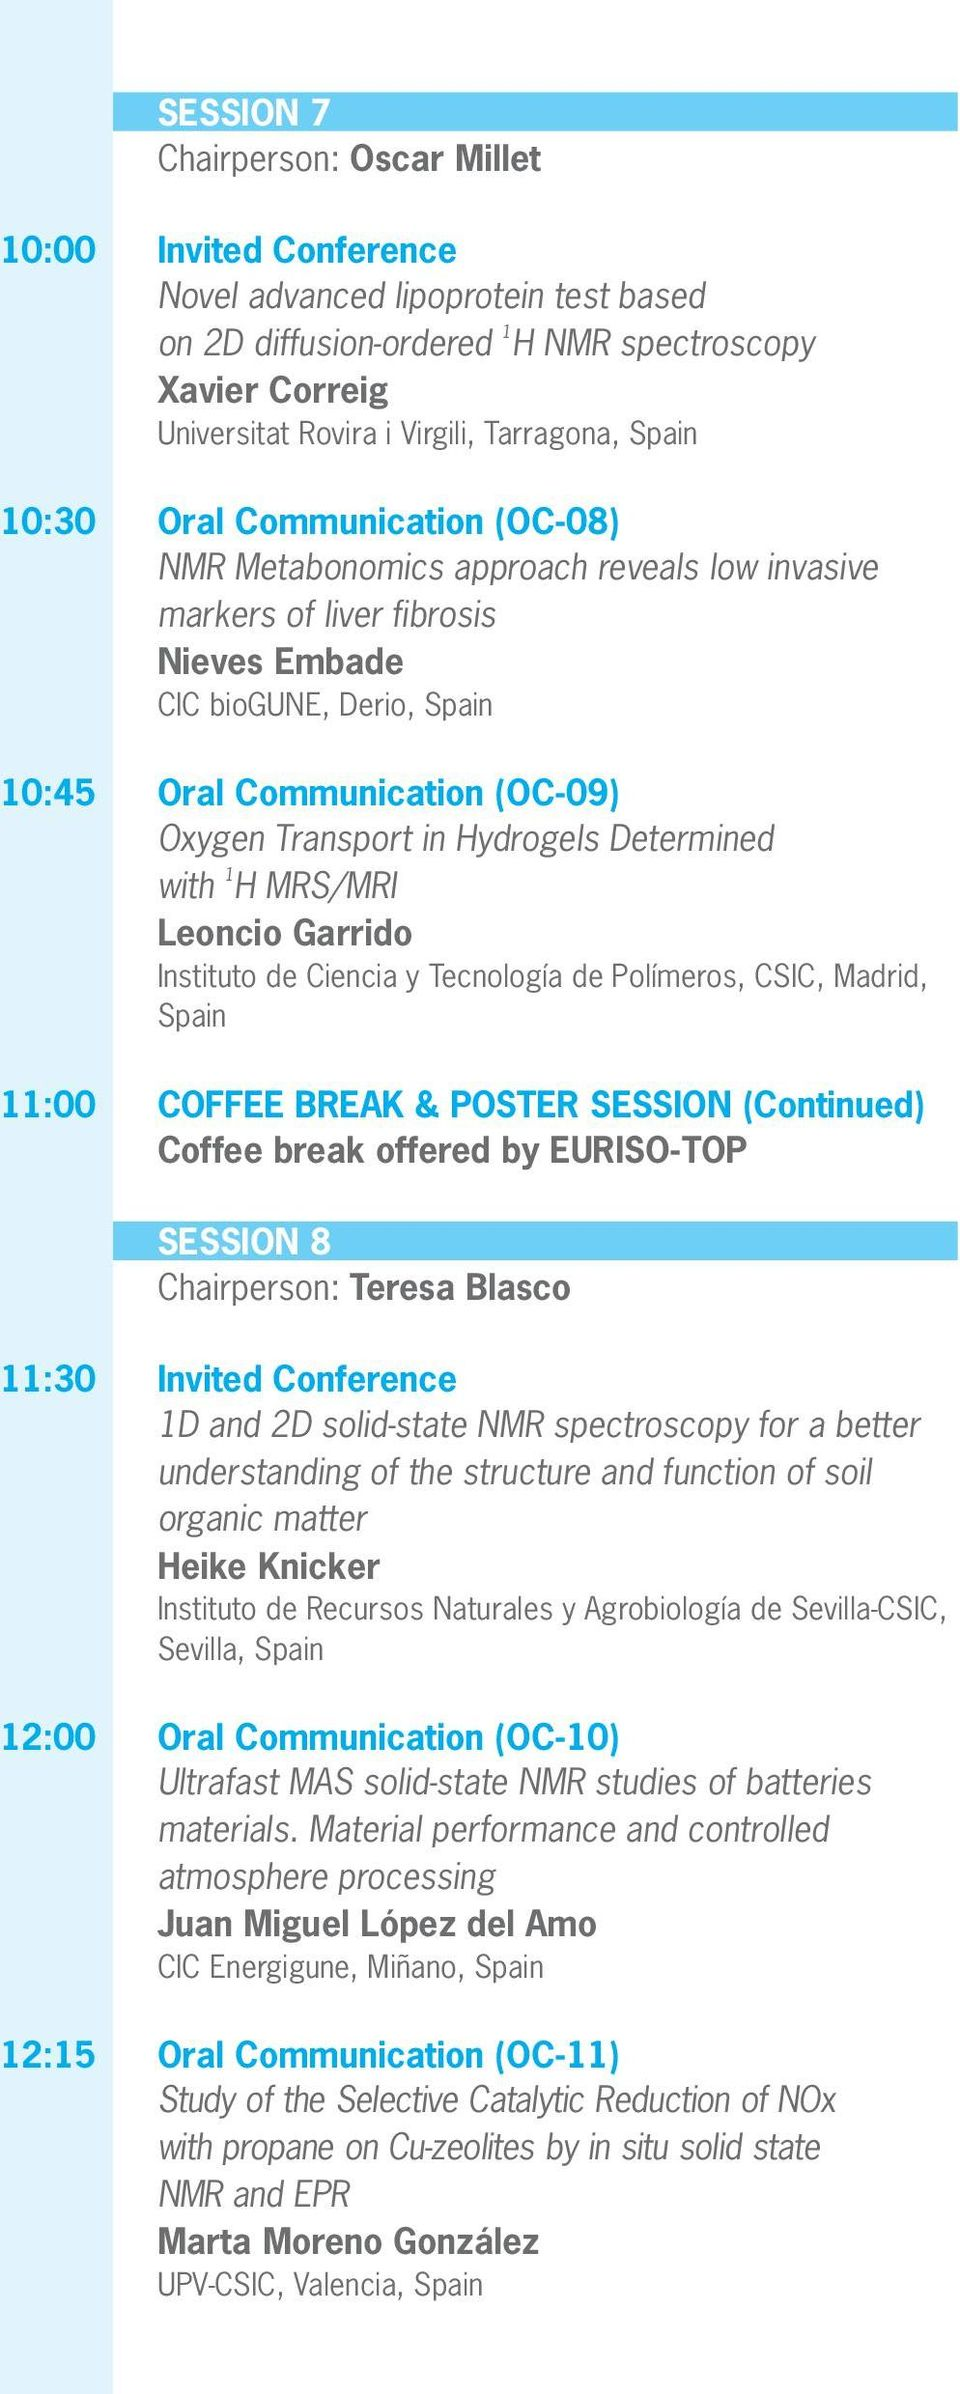 Transport in Hydrogels Determined 1 with H MRS/MRI Leoncio Garrido Instituto de Ciencia y Tecnología de Polímeros, CSIC, Madrid, Spain 11:00 COFFEE BREAK & POSTER SESSION (Continued) Coffee break